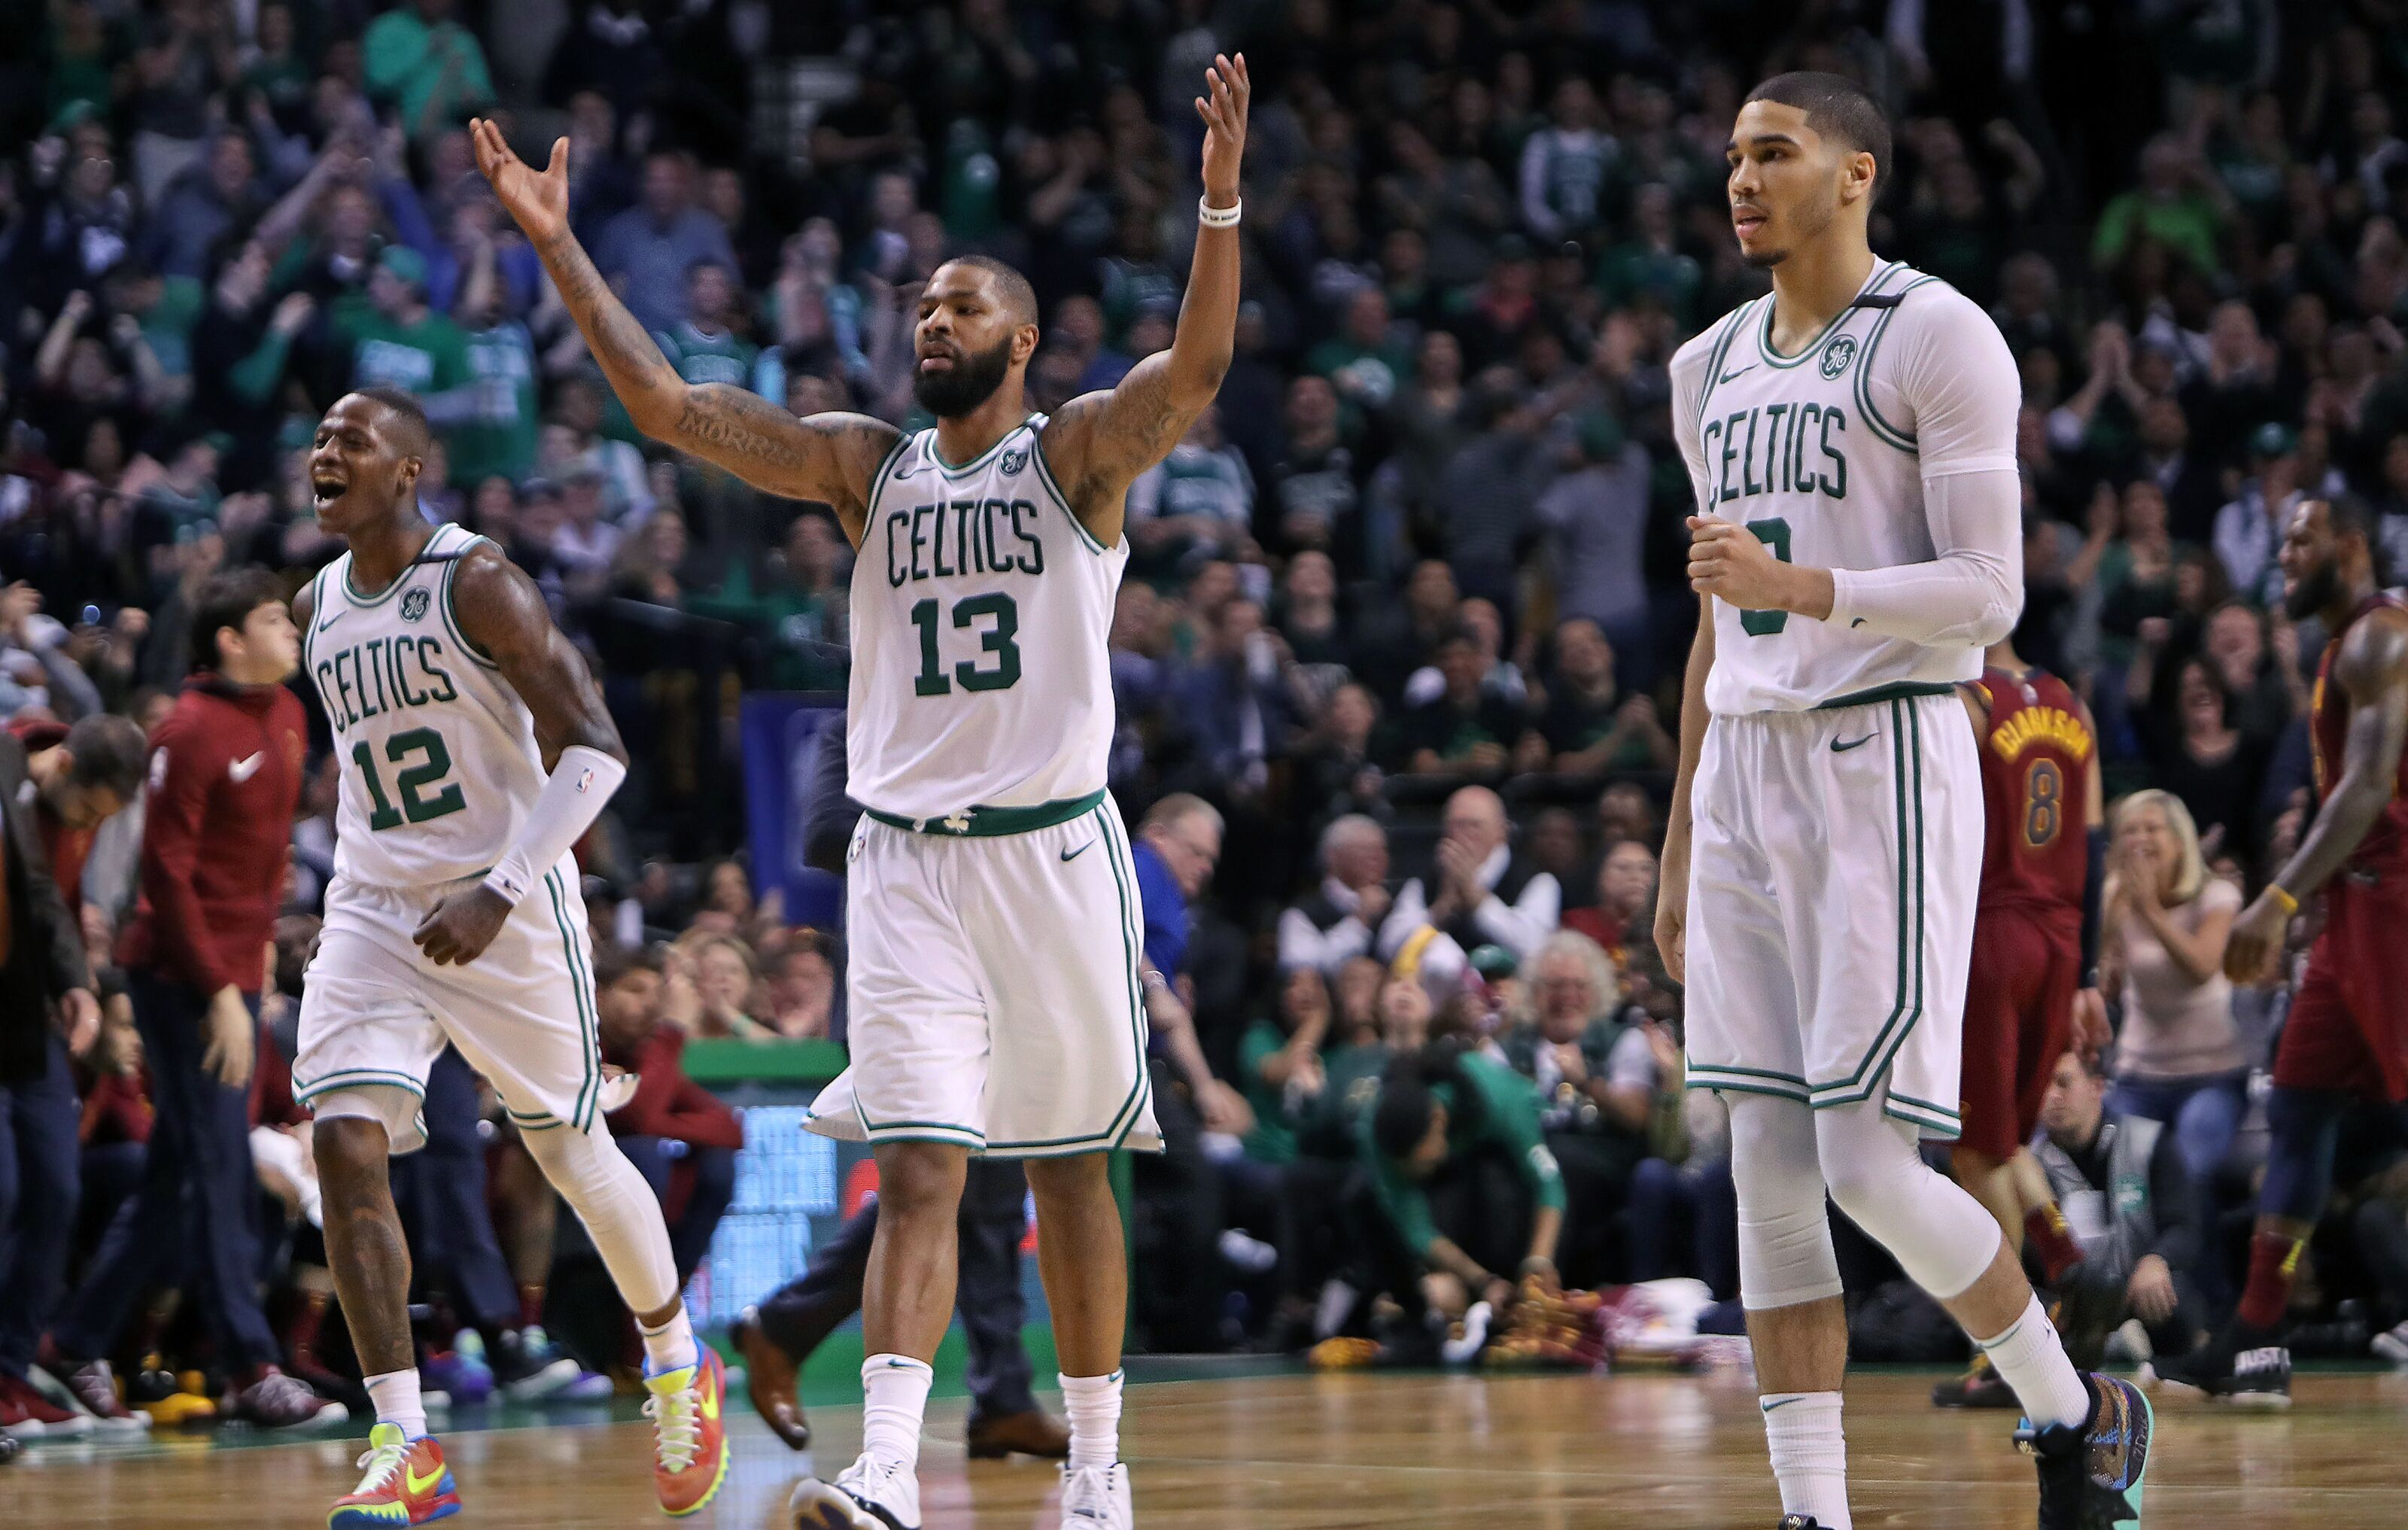 ece5856309d0 Boston Celtics have to expect great response from LeBron James